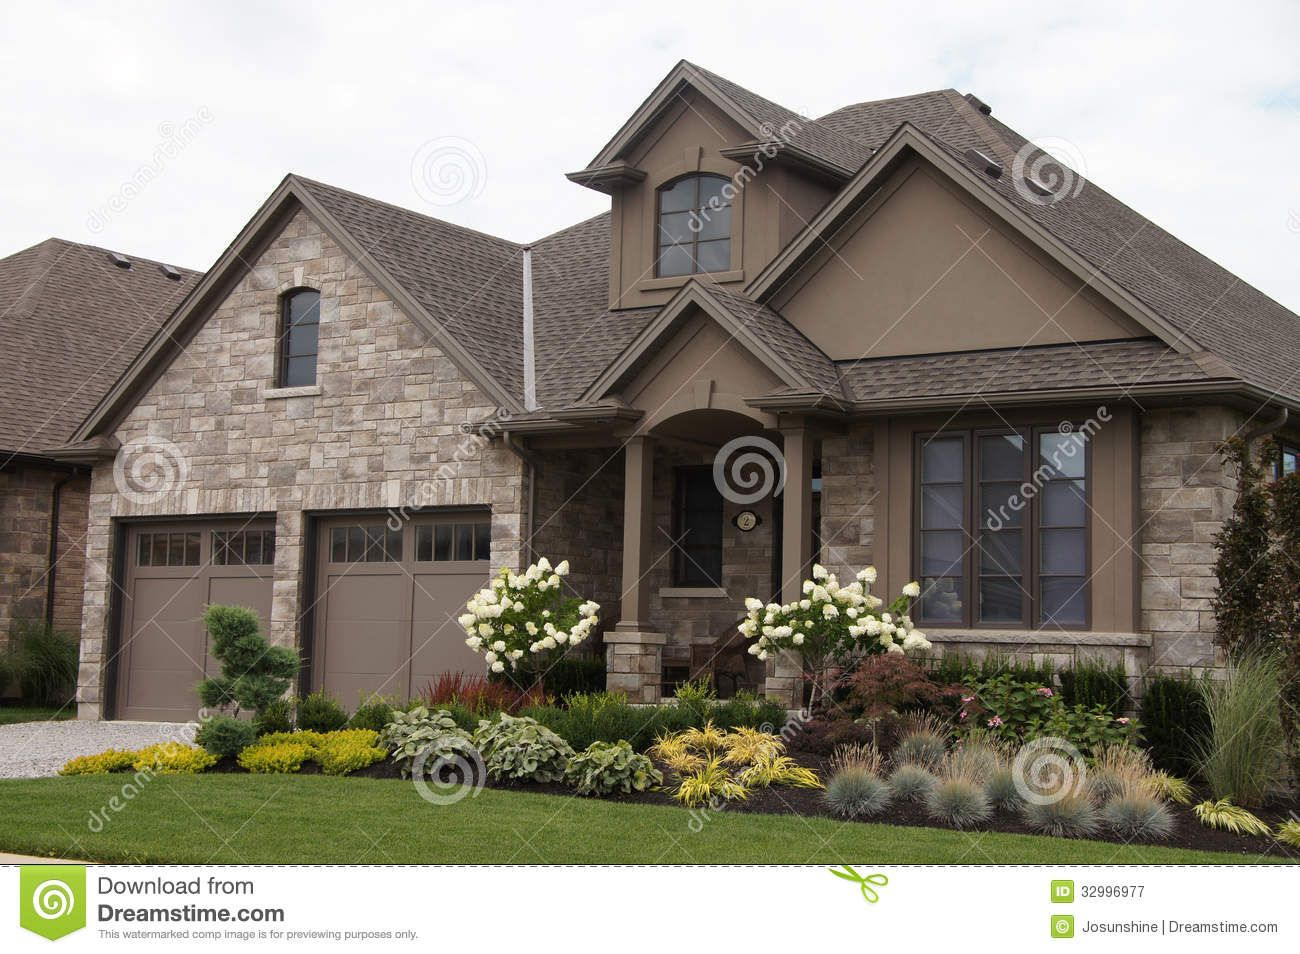 Stucco homes stucco stone house pretty garden royalty free stock photography new home Brown exterior house paint schemes